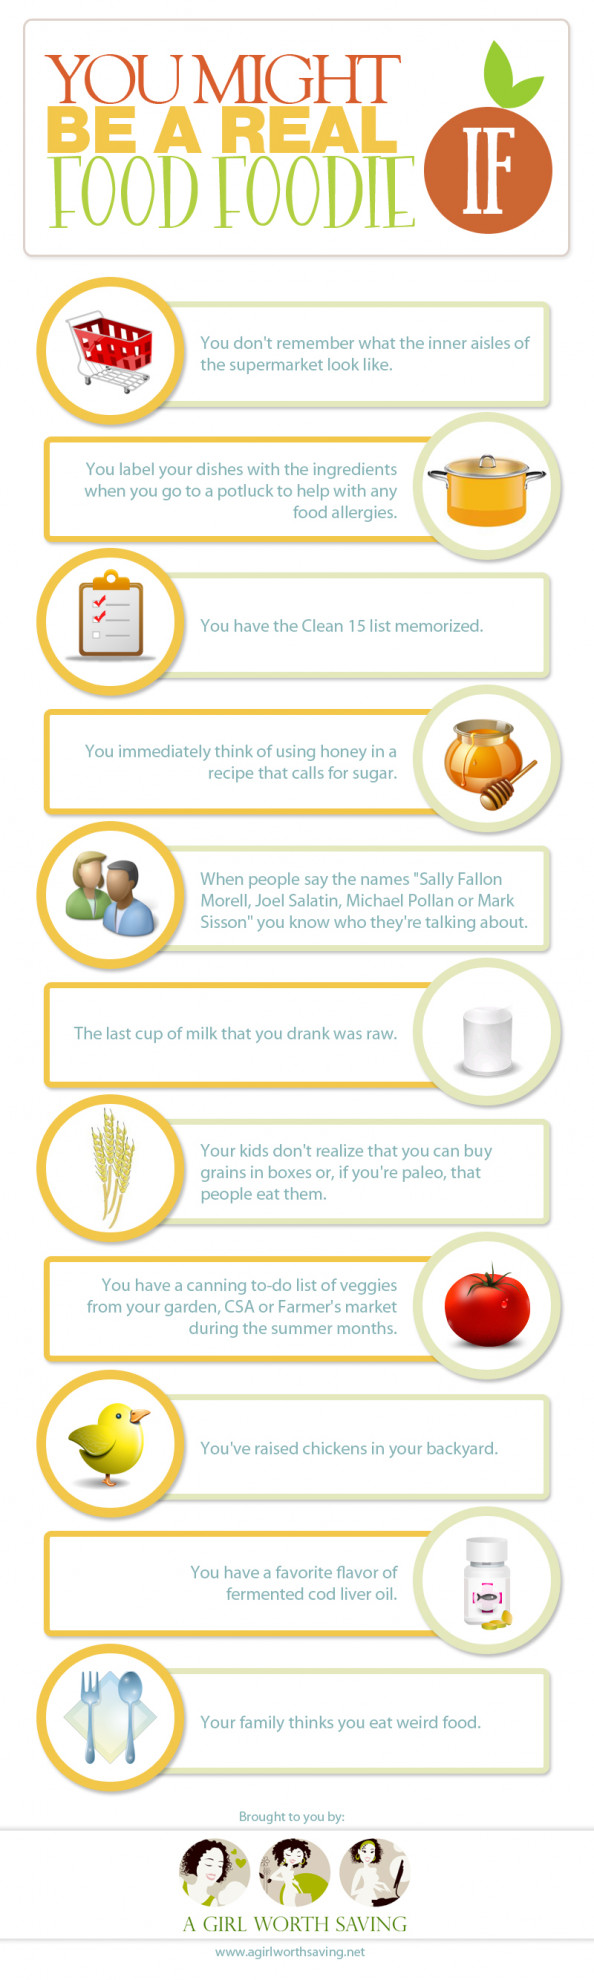 You might be a Real Food Foodie If Infographic